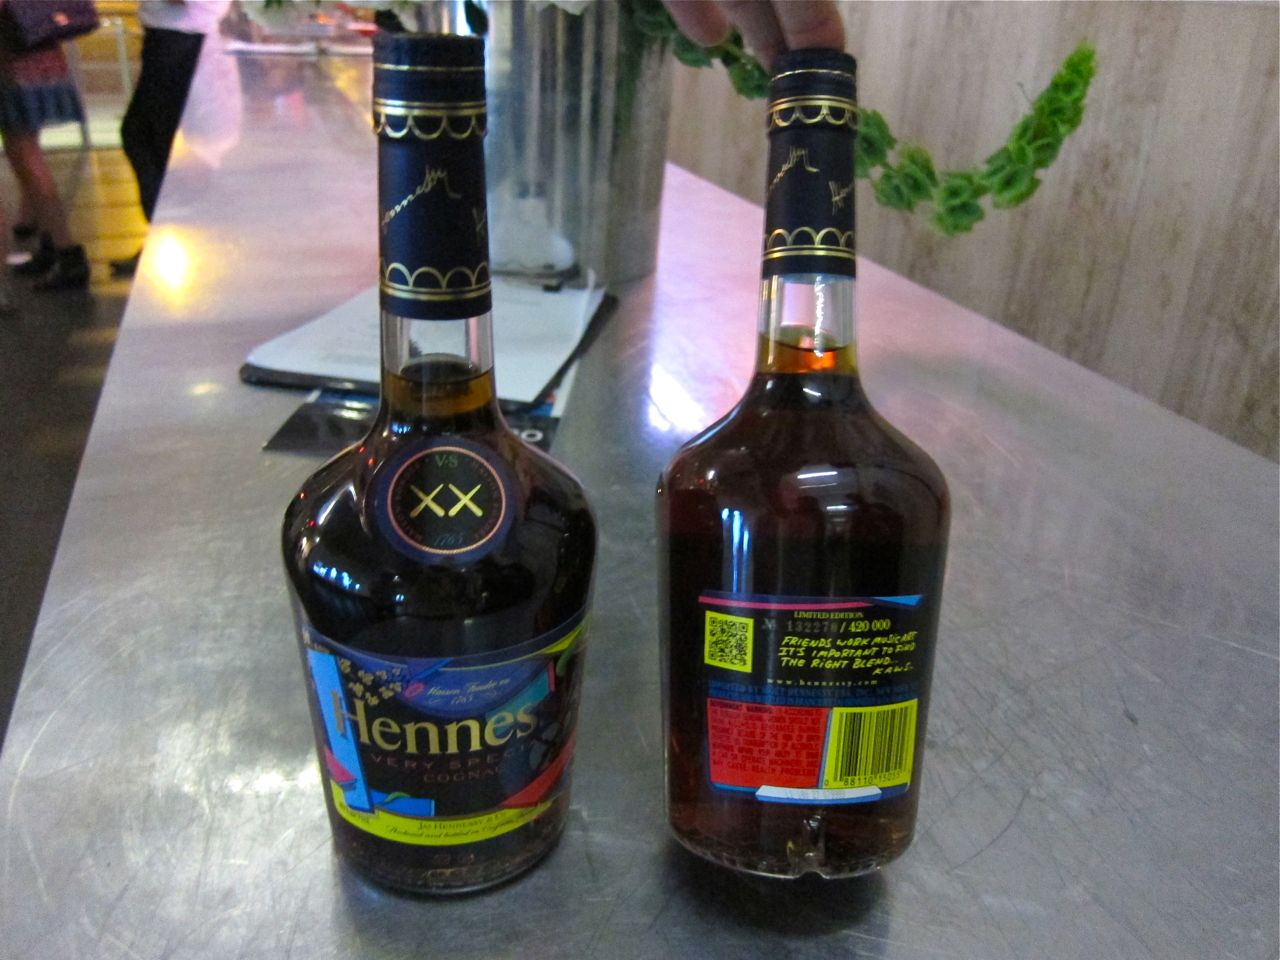 KAWS Hennessy VS Cognac Bottle New Museum AM 09